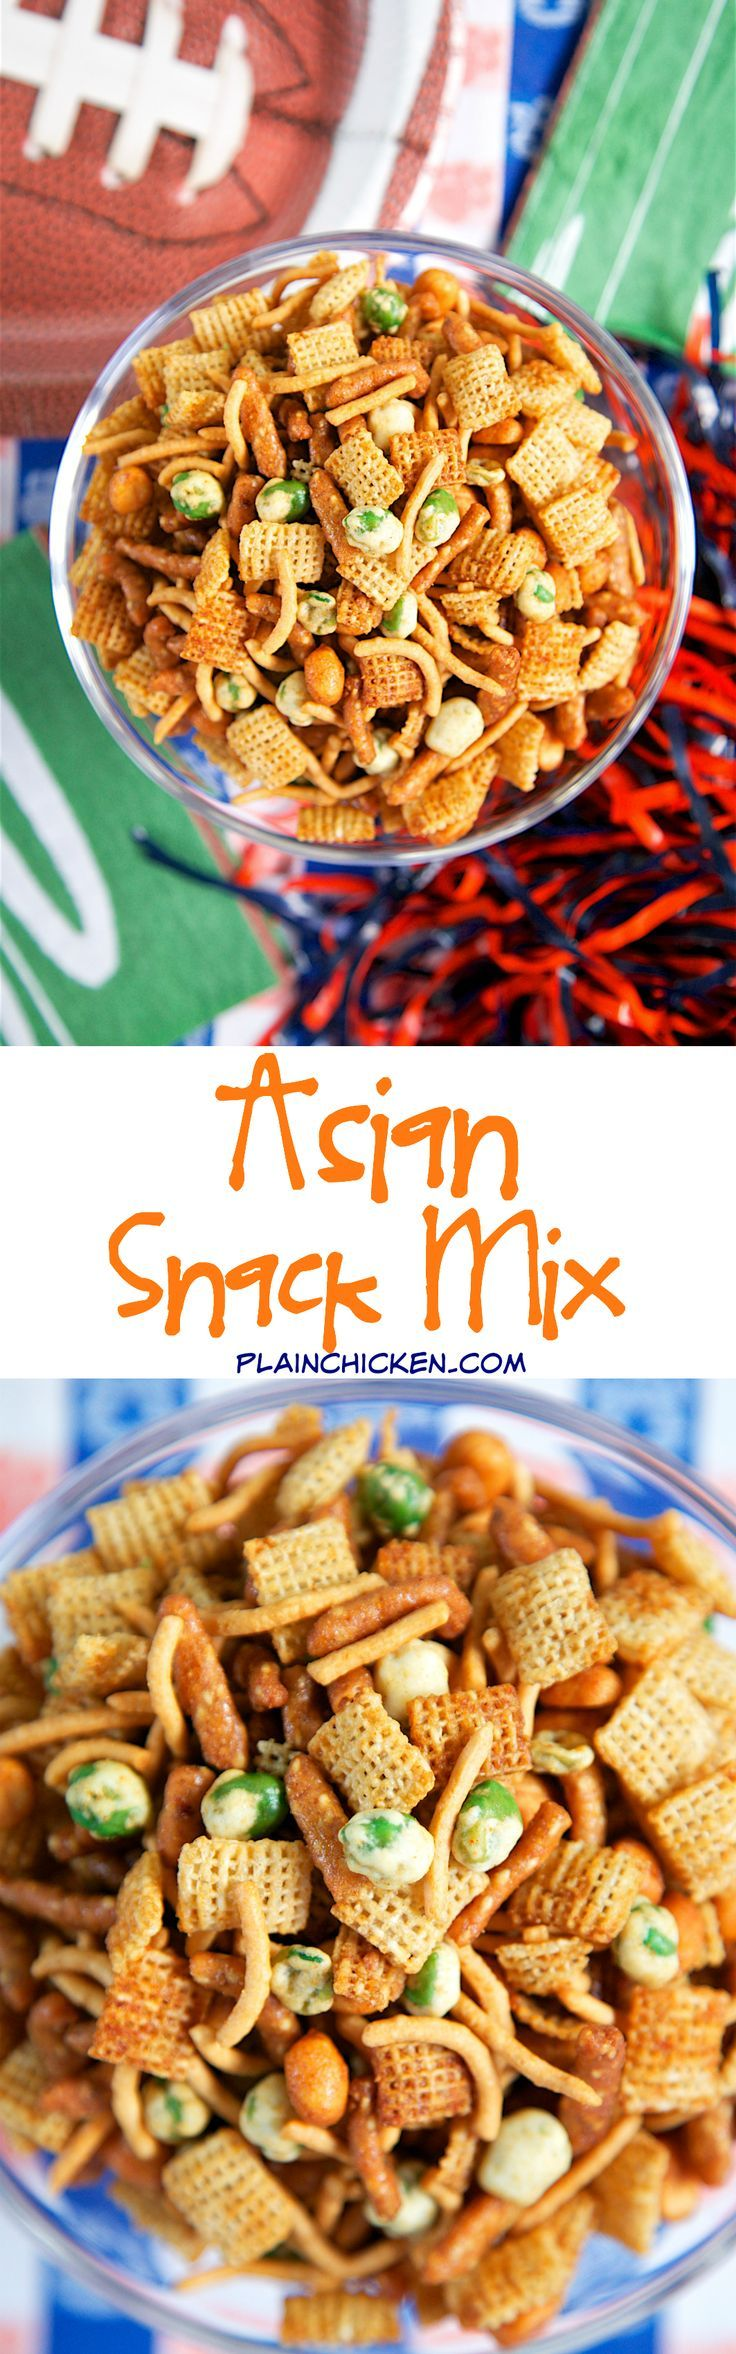 Asian Snack Mix - rice chex, sesame sticks, wasabi peas, chow mein noodles, honey roasted peanuts tossed in butter, soy sauce, ginger, garlic and cayenne - this stuff is crazy addictive! Can make ahead of time - it keeps for a week. Always the first thing